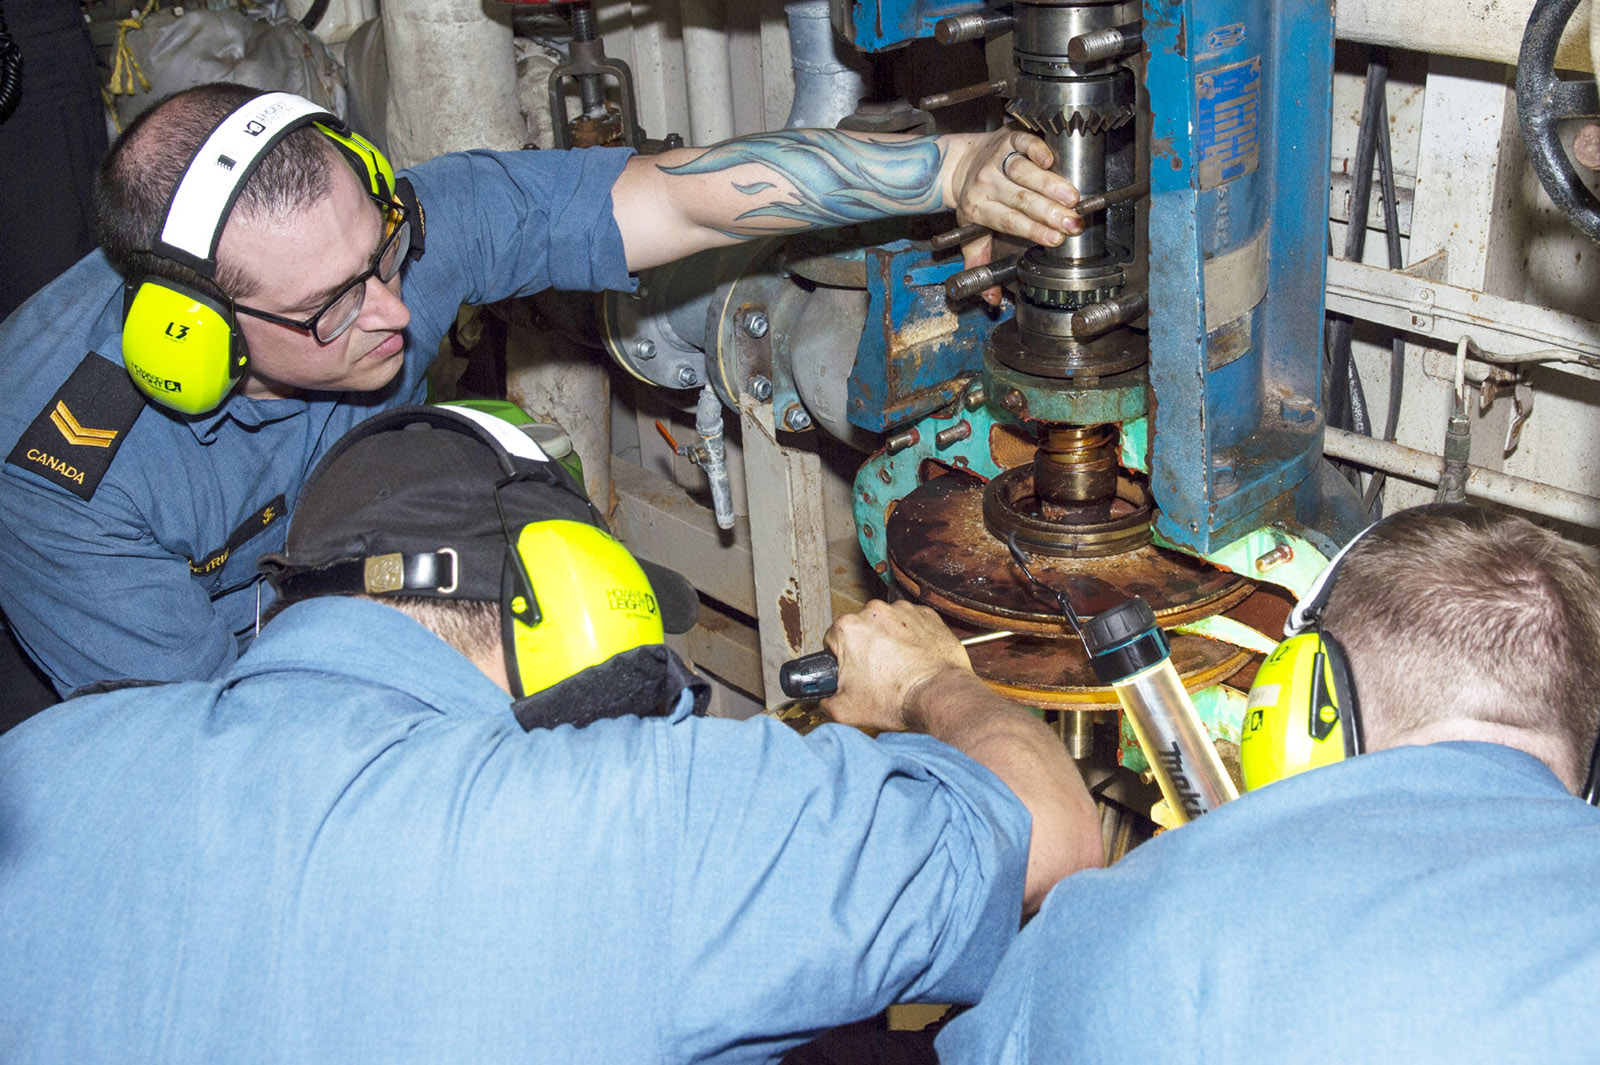 Naval engineers conduct scheduled maintenance on a piece of machinery.